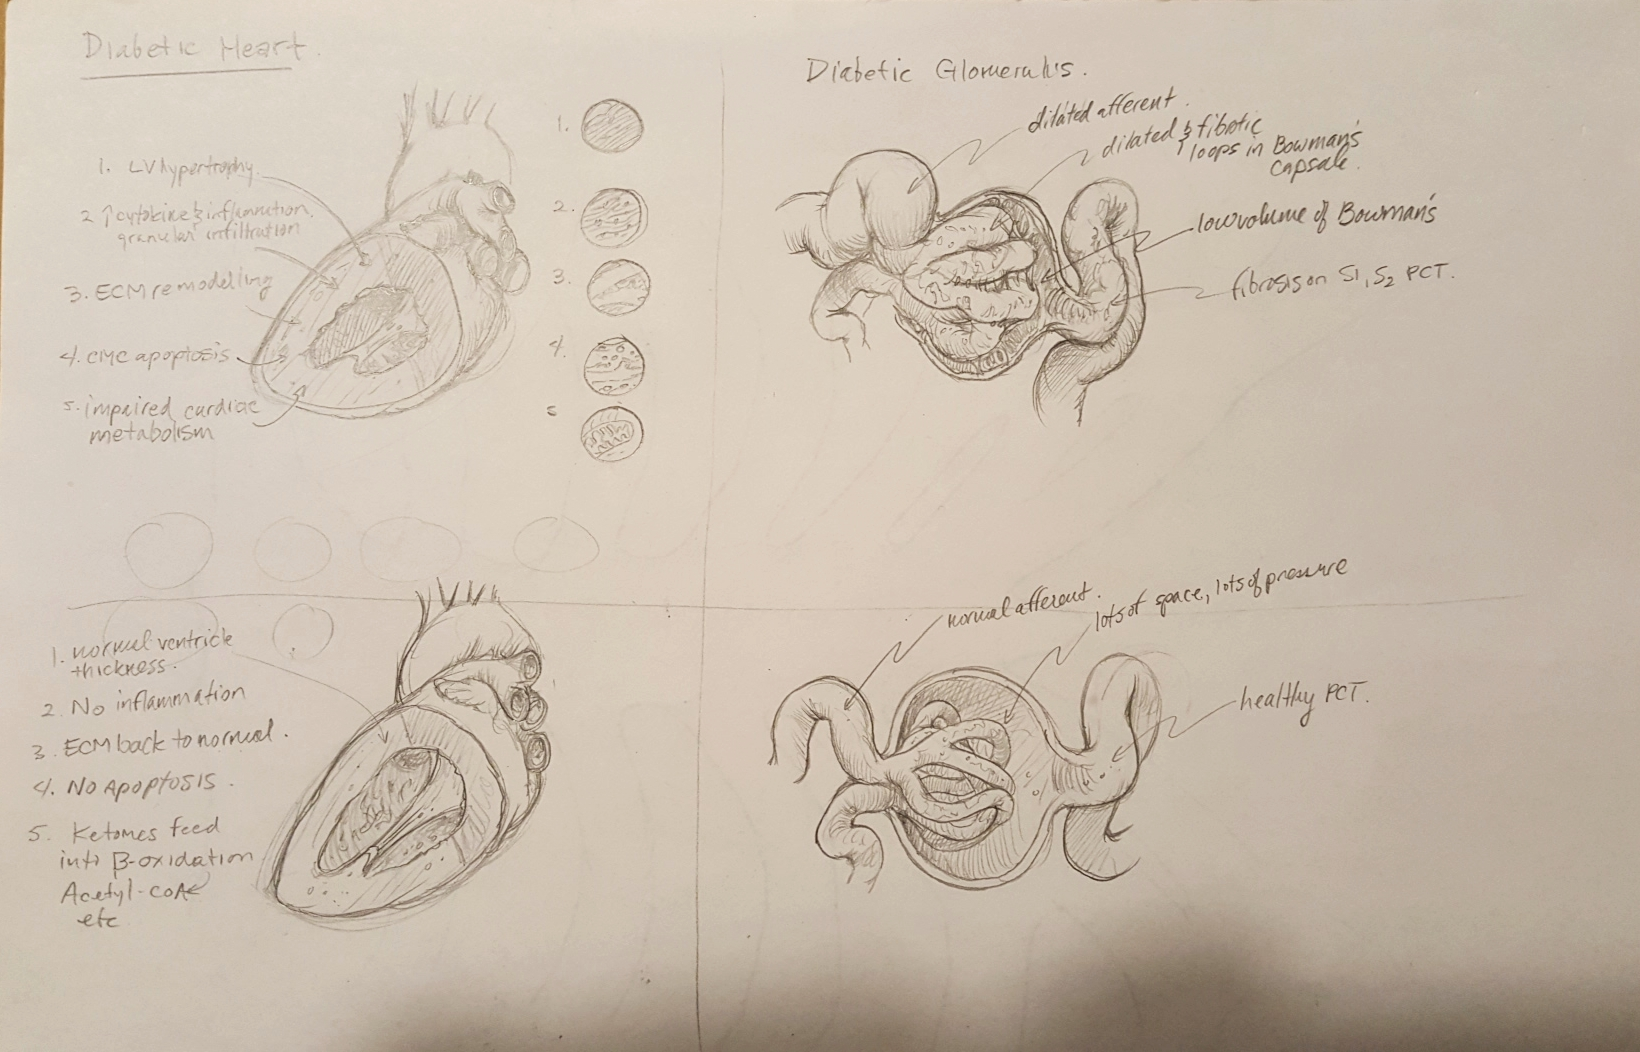 """This was the first sketch of the first image contrasting the diabetic heart and glomerulus. """"Disaster heart and glomerulus"""" at the top, and the heart and glomerulus with NHE inhibitors at work, all the disasterous effects of diabetes slightly ameliorated. The squiggly line notes are just illustration notes of what I'm  trying to show and am usually not able to geven the crudeness of the initial sketch."""